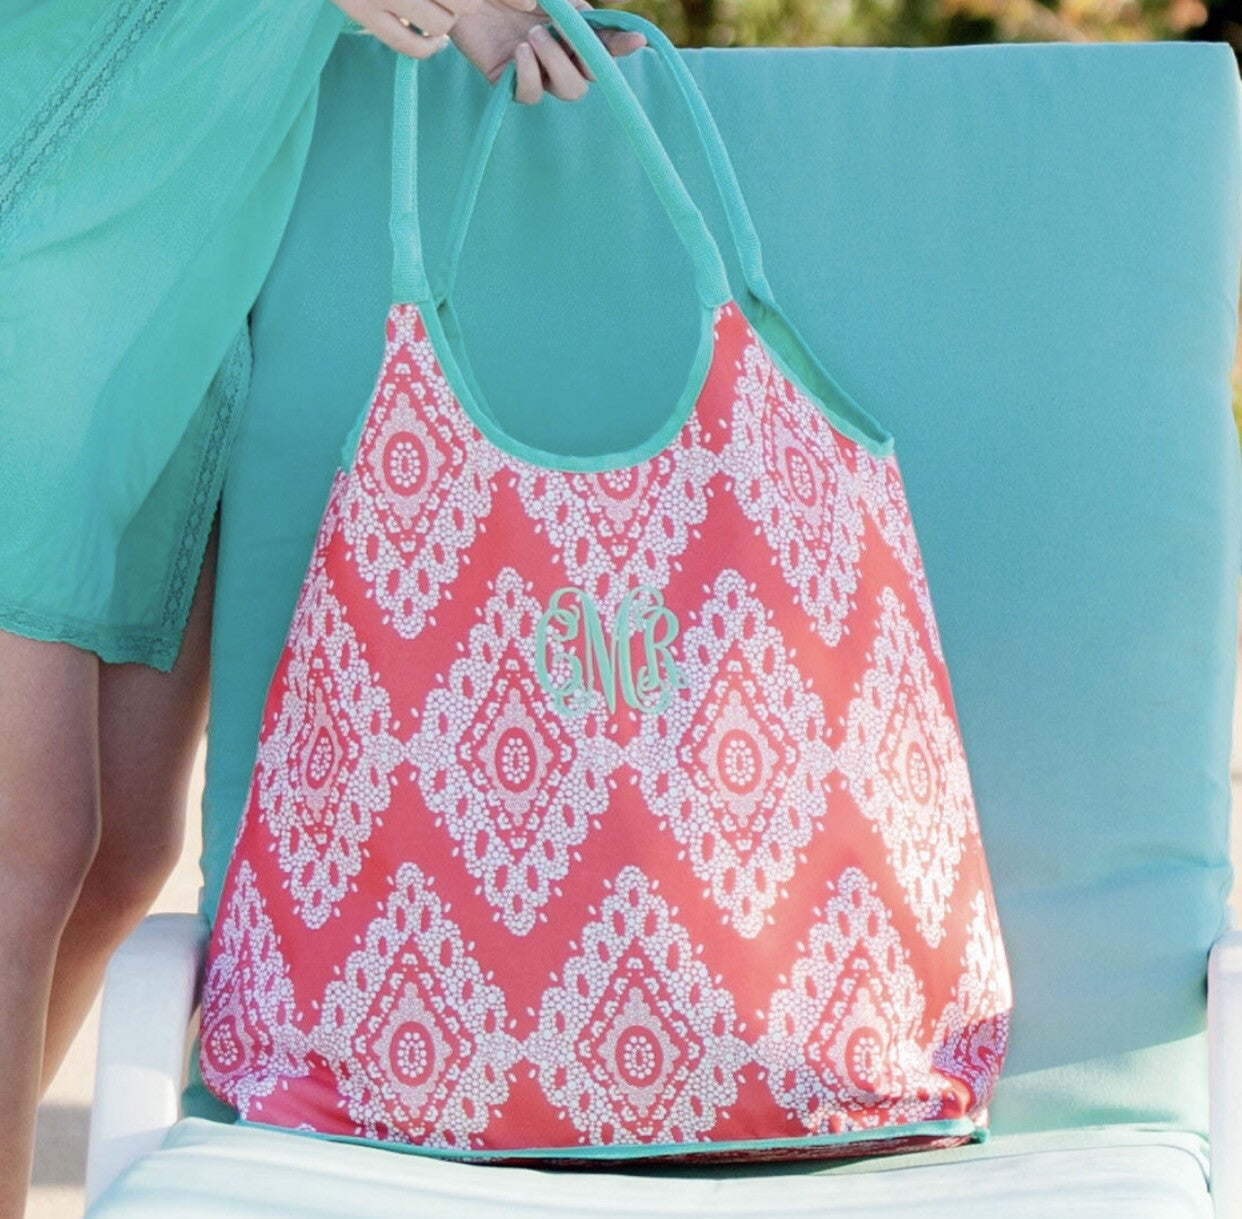 Monogrammed Coral Cove Beach Tote Bag